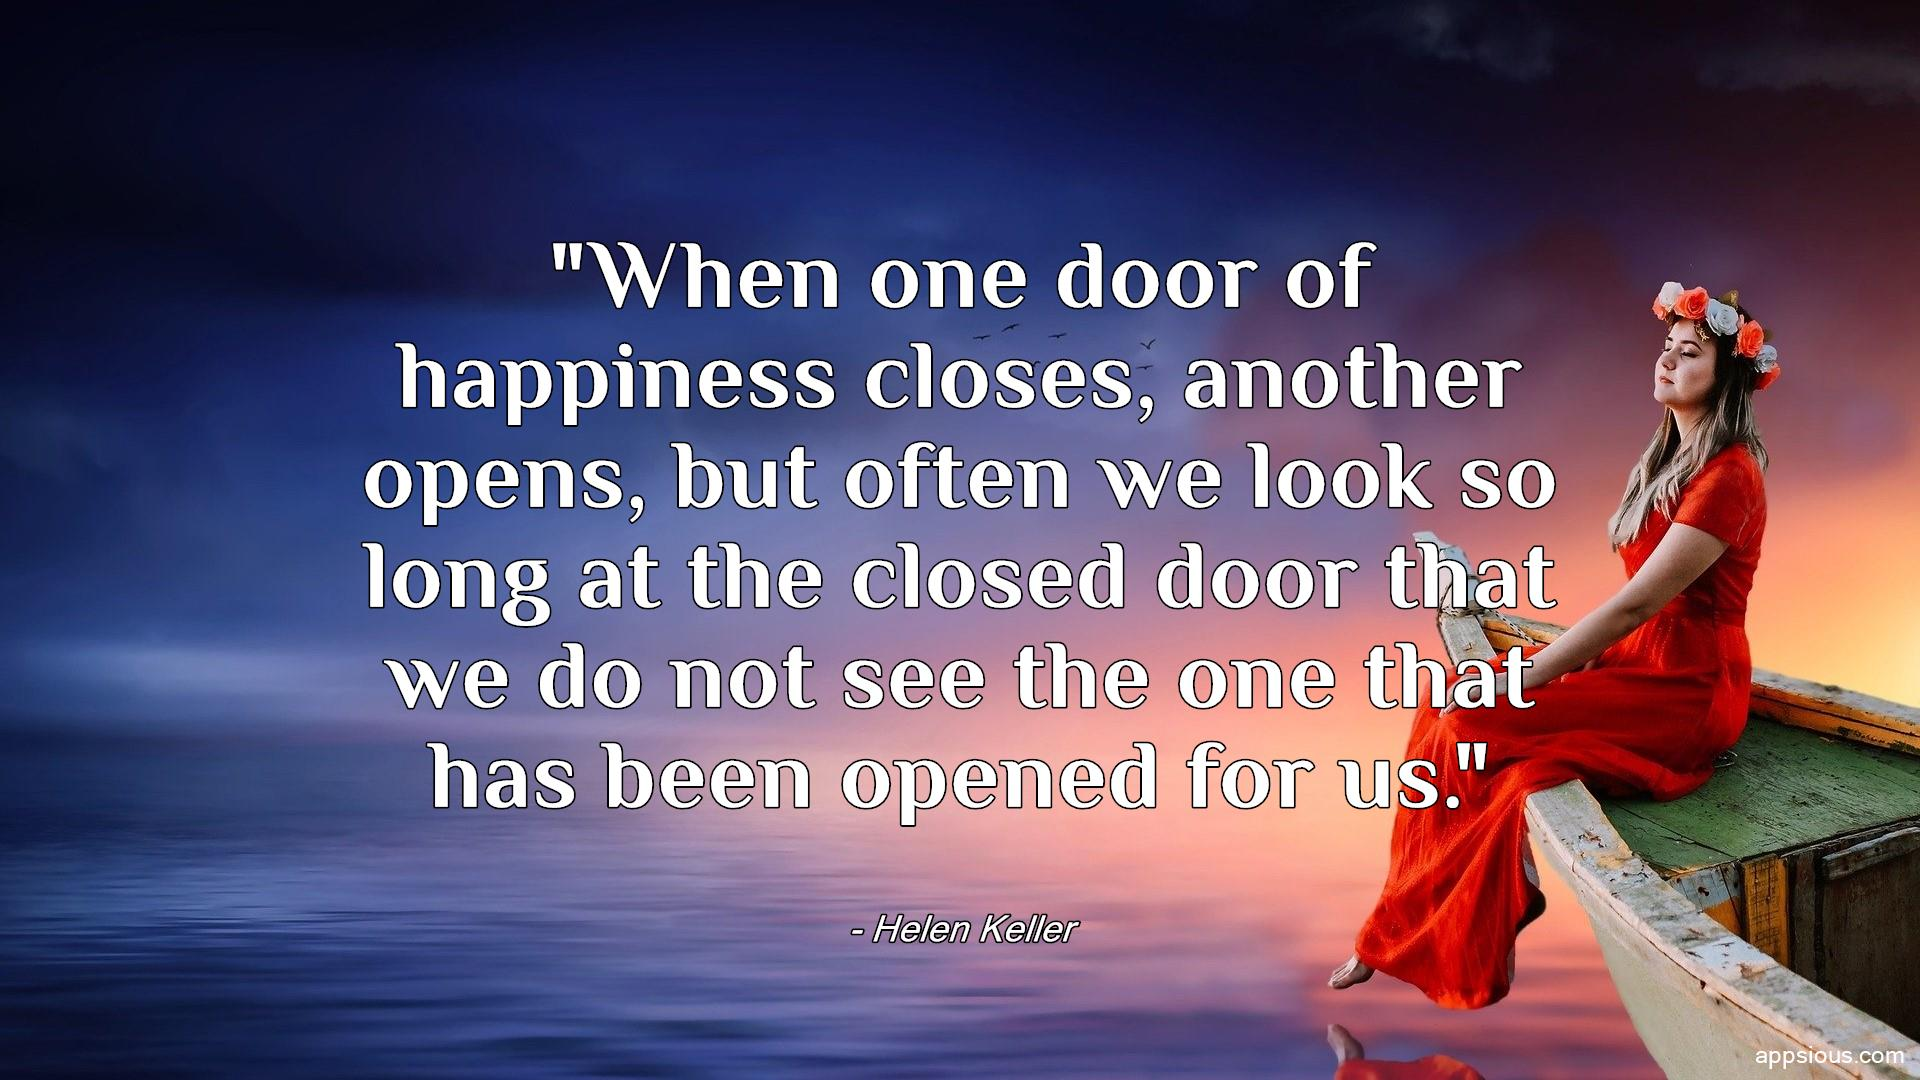 When one door of happiness closes, another opens, but often we look so long at the closed door that we do not see the one that has been opened for us.